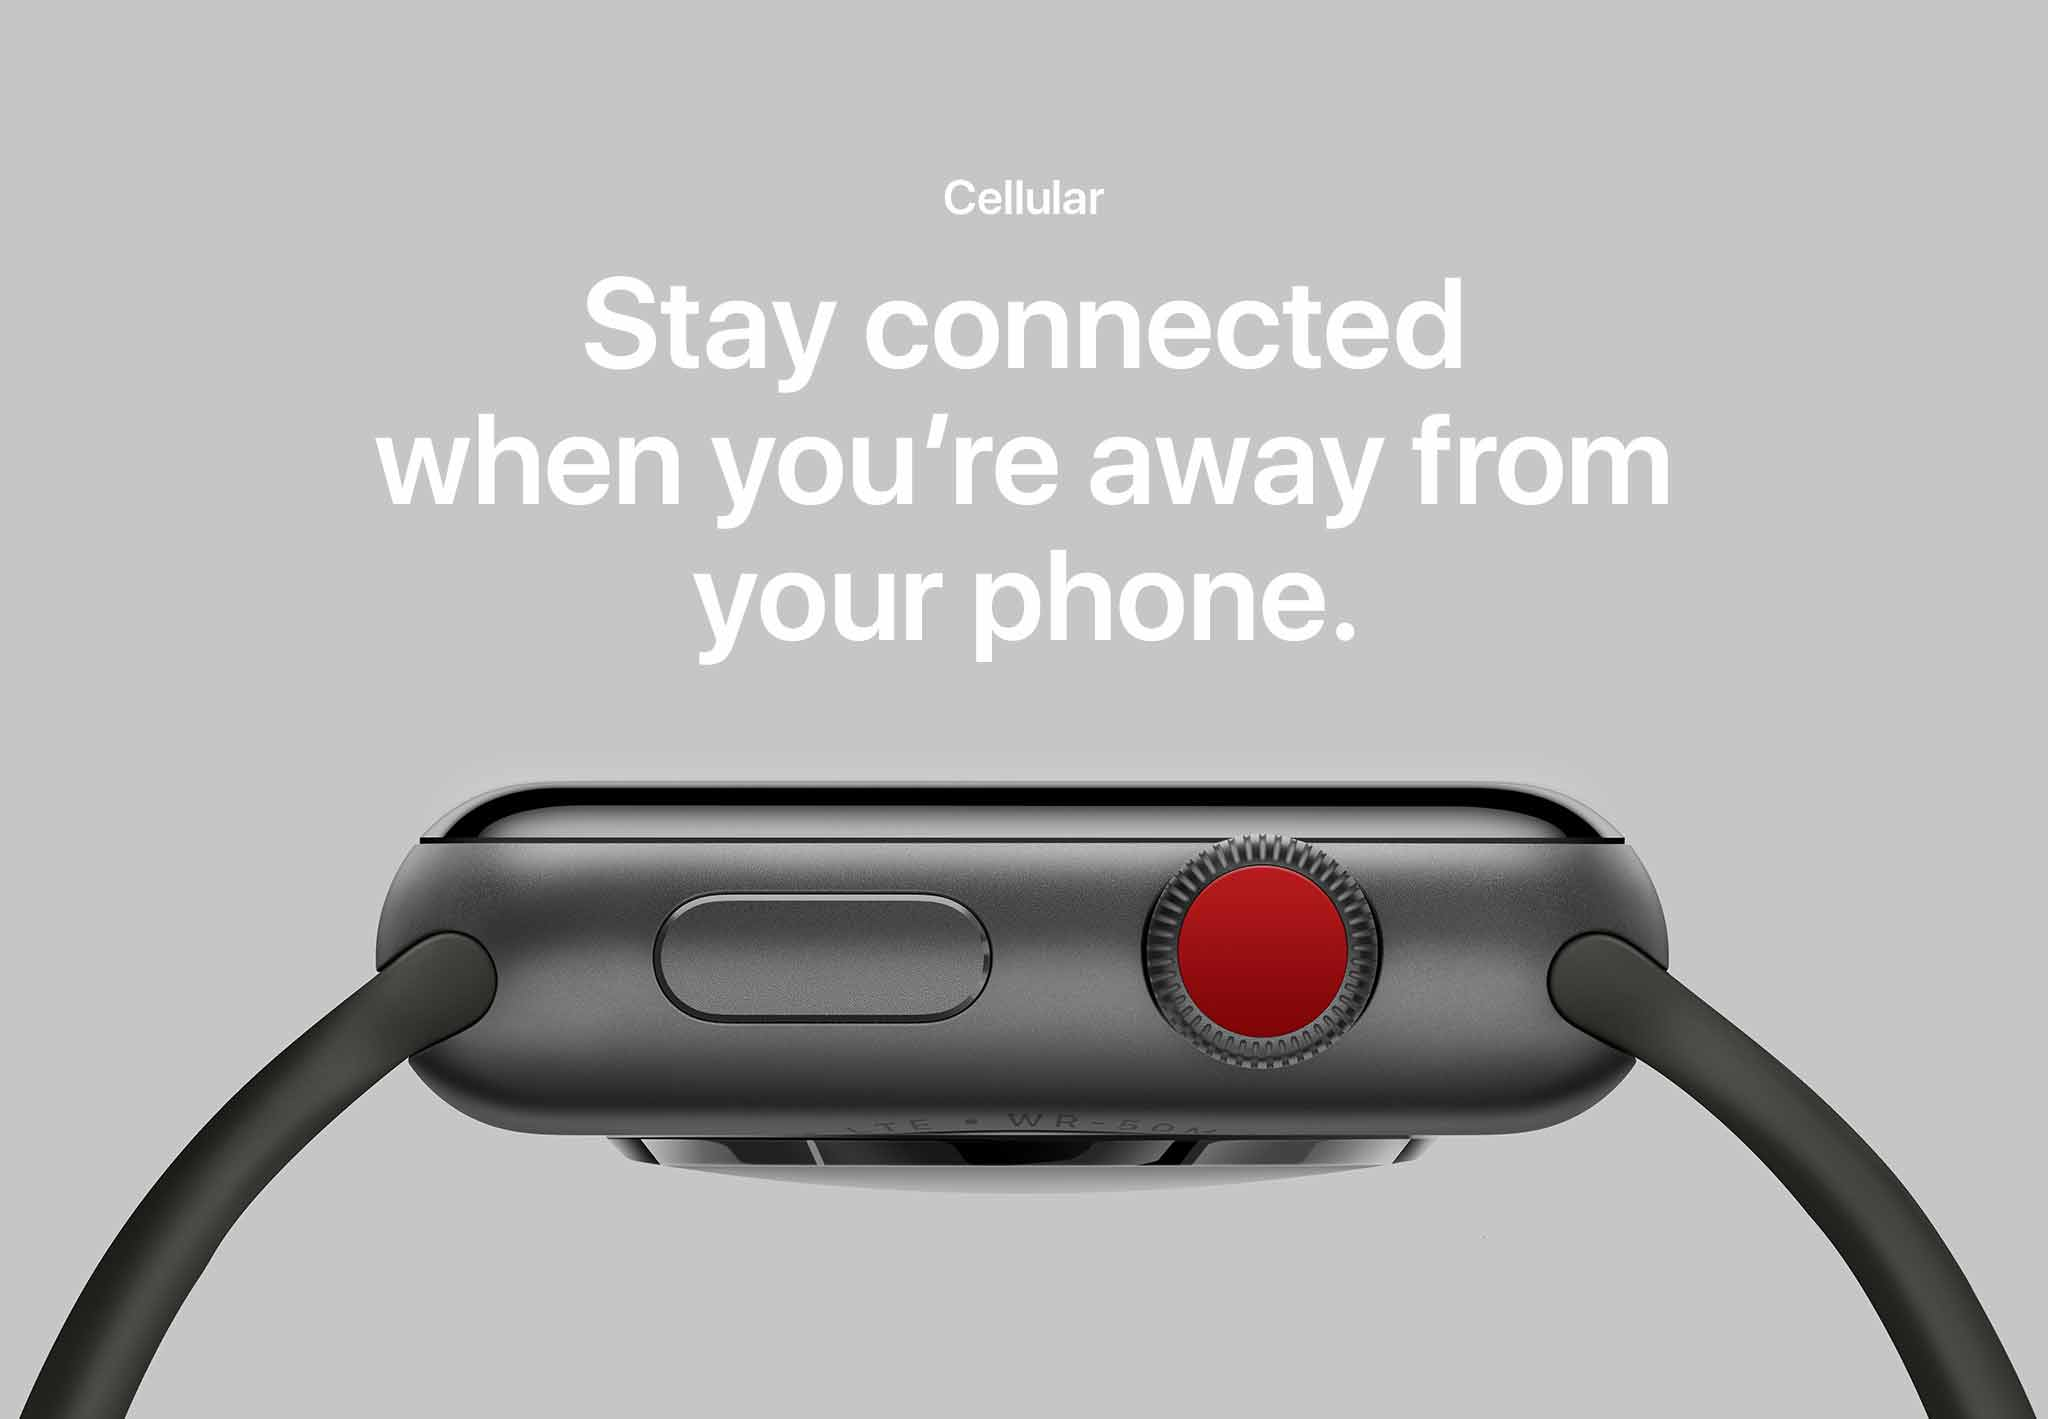 Apple watch 3 stay connected